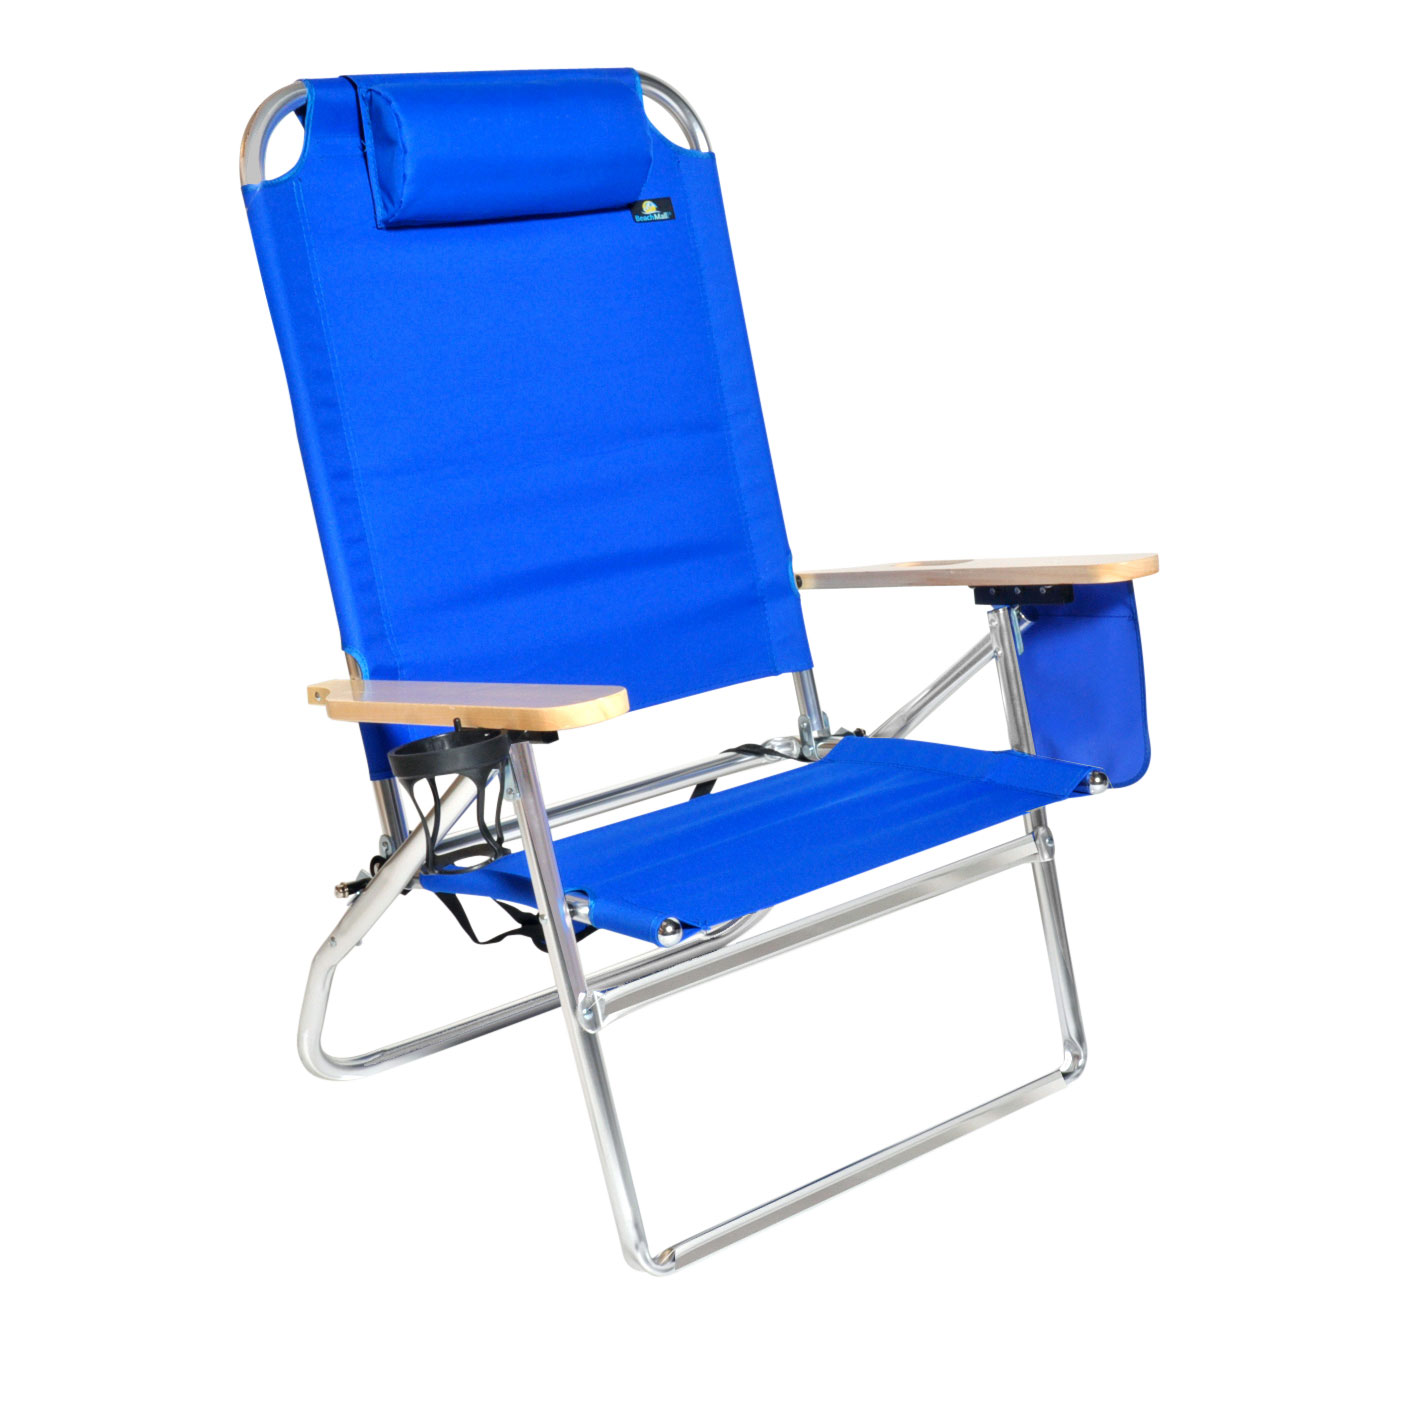 Extra Large - High Seat 3 Reclining Position Aluminum Heavy Duty Beach Chair with Cup Holder - 300 lbs Capacity